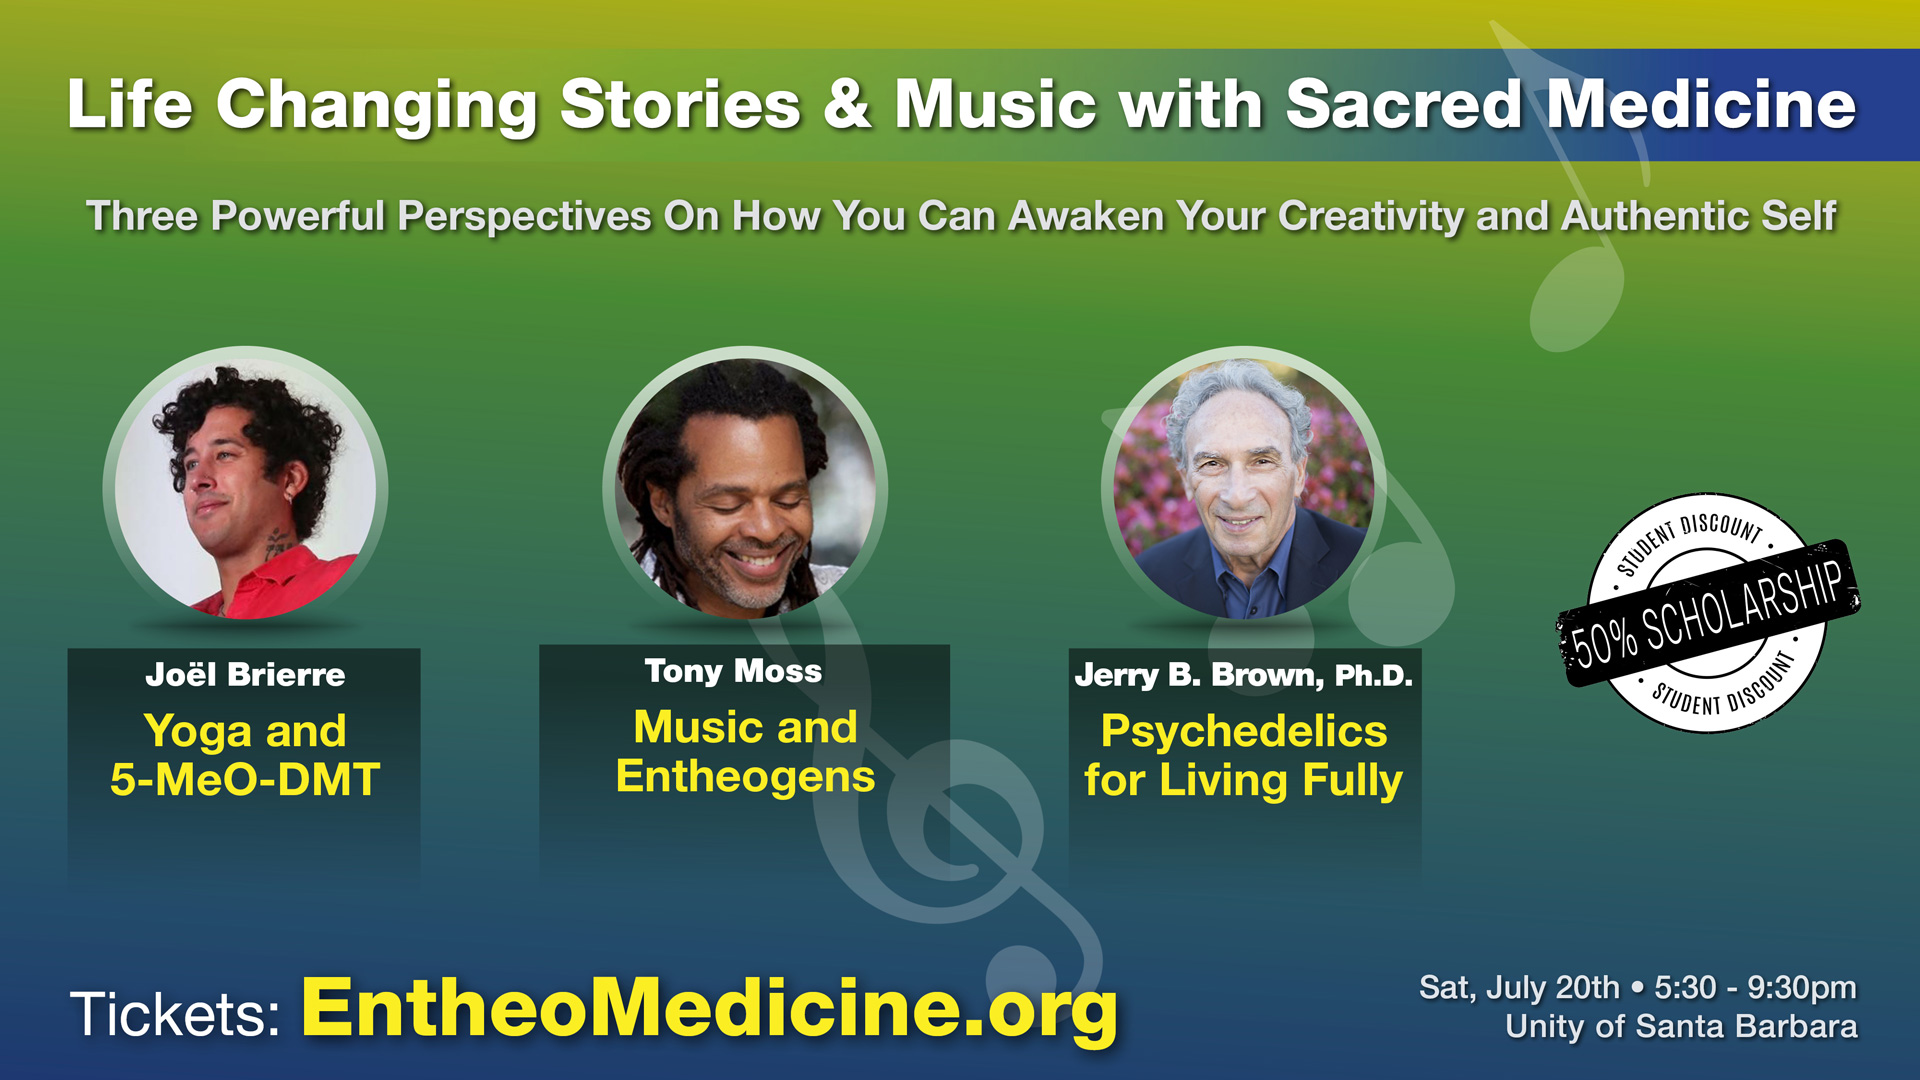 An Evening of Life Changing Stories & Music with Sacred Medicine